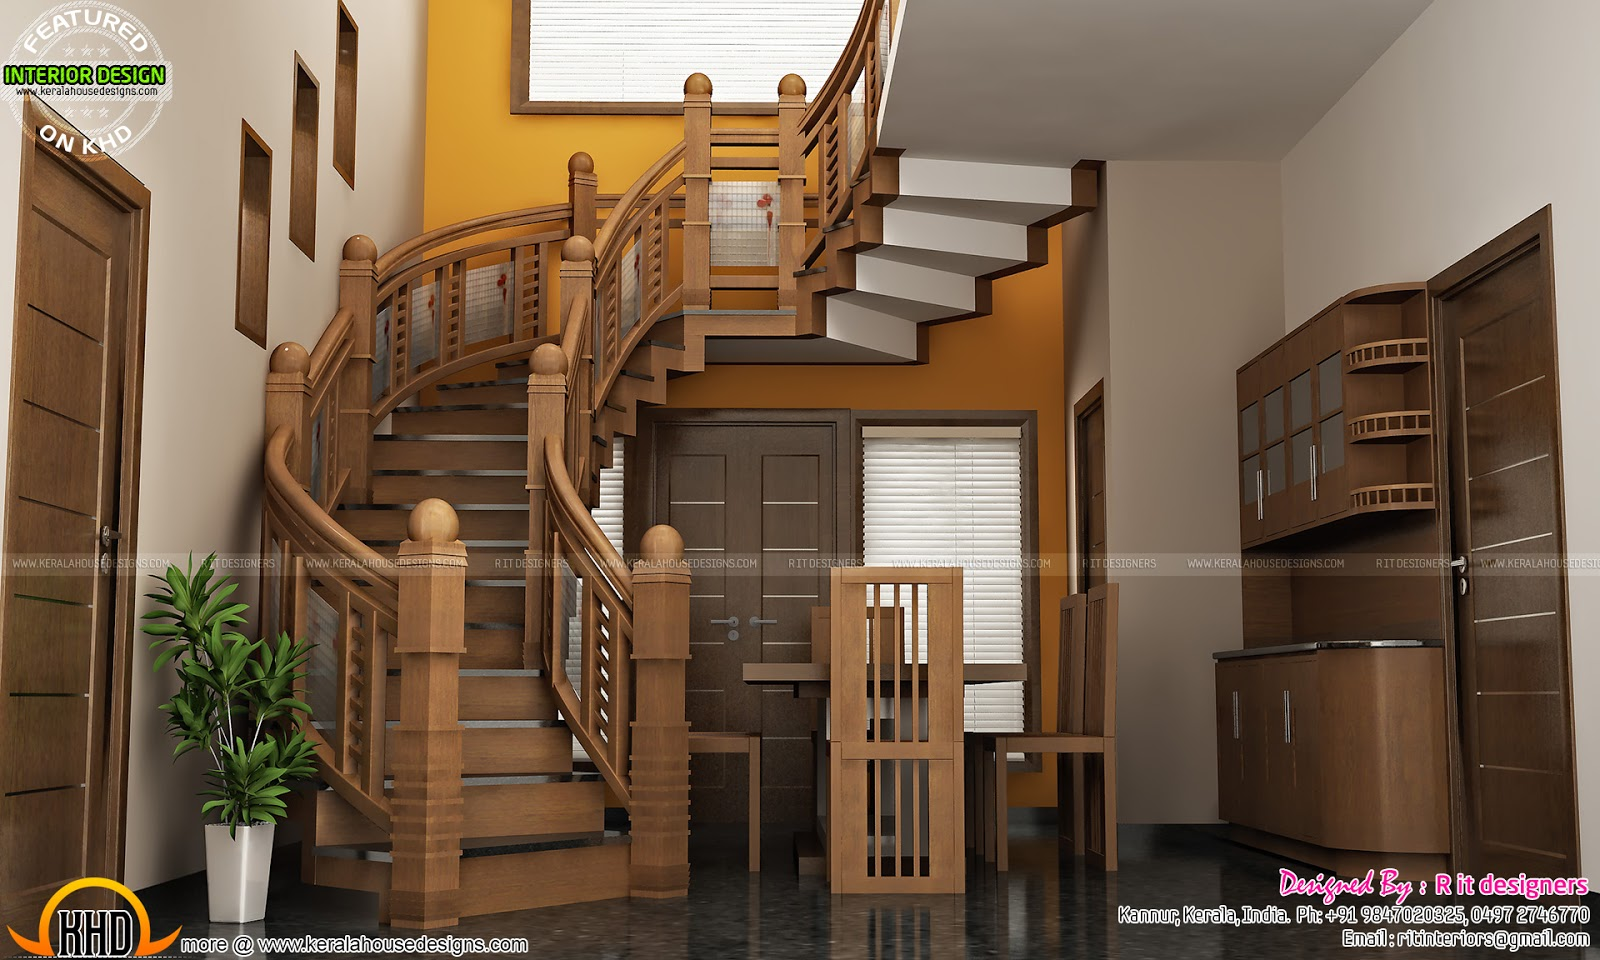 Under stair design wooden stair kitchen and living for New model house interior design